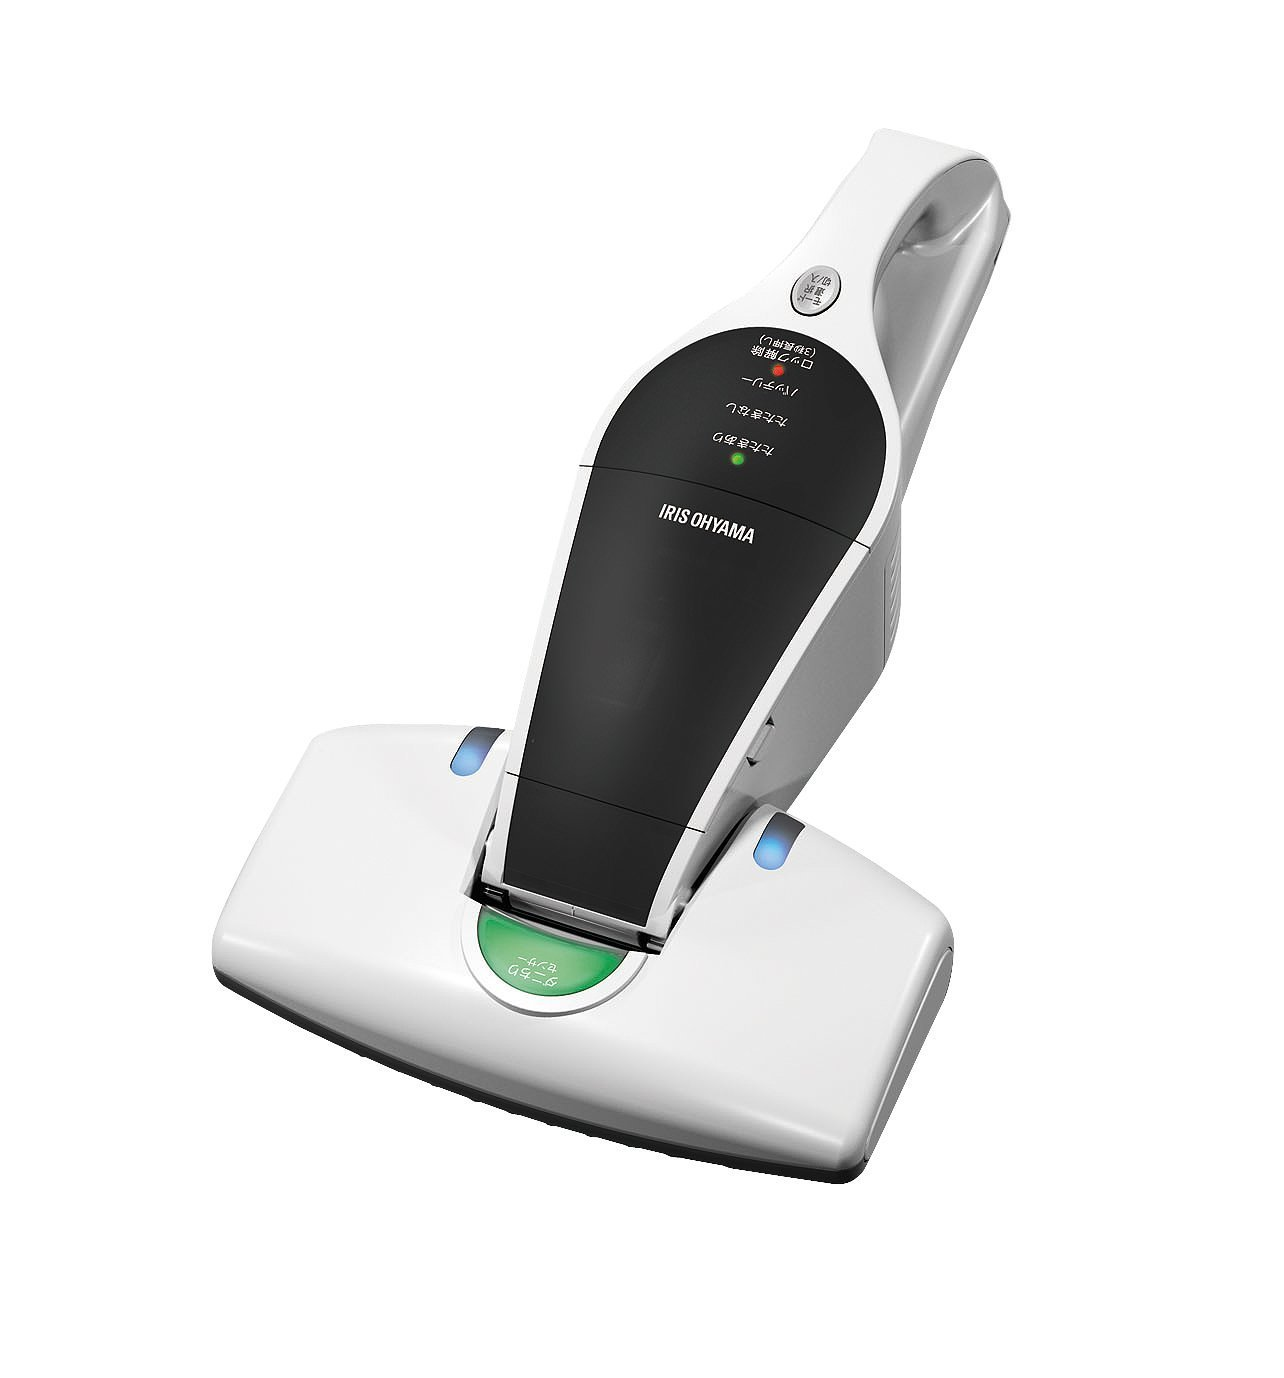 Iris cordless and futon cleaner pearl white [cleaner] IC-FDC1-WP